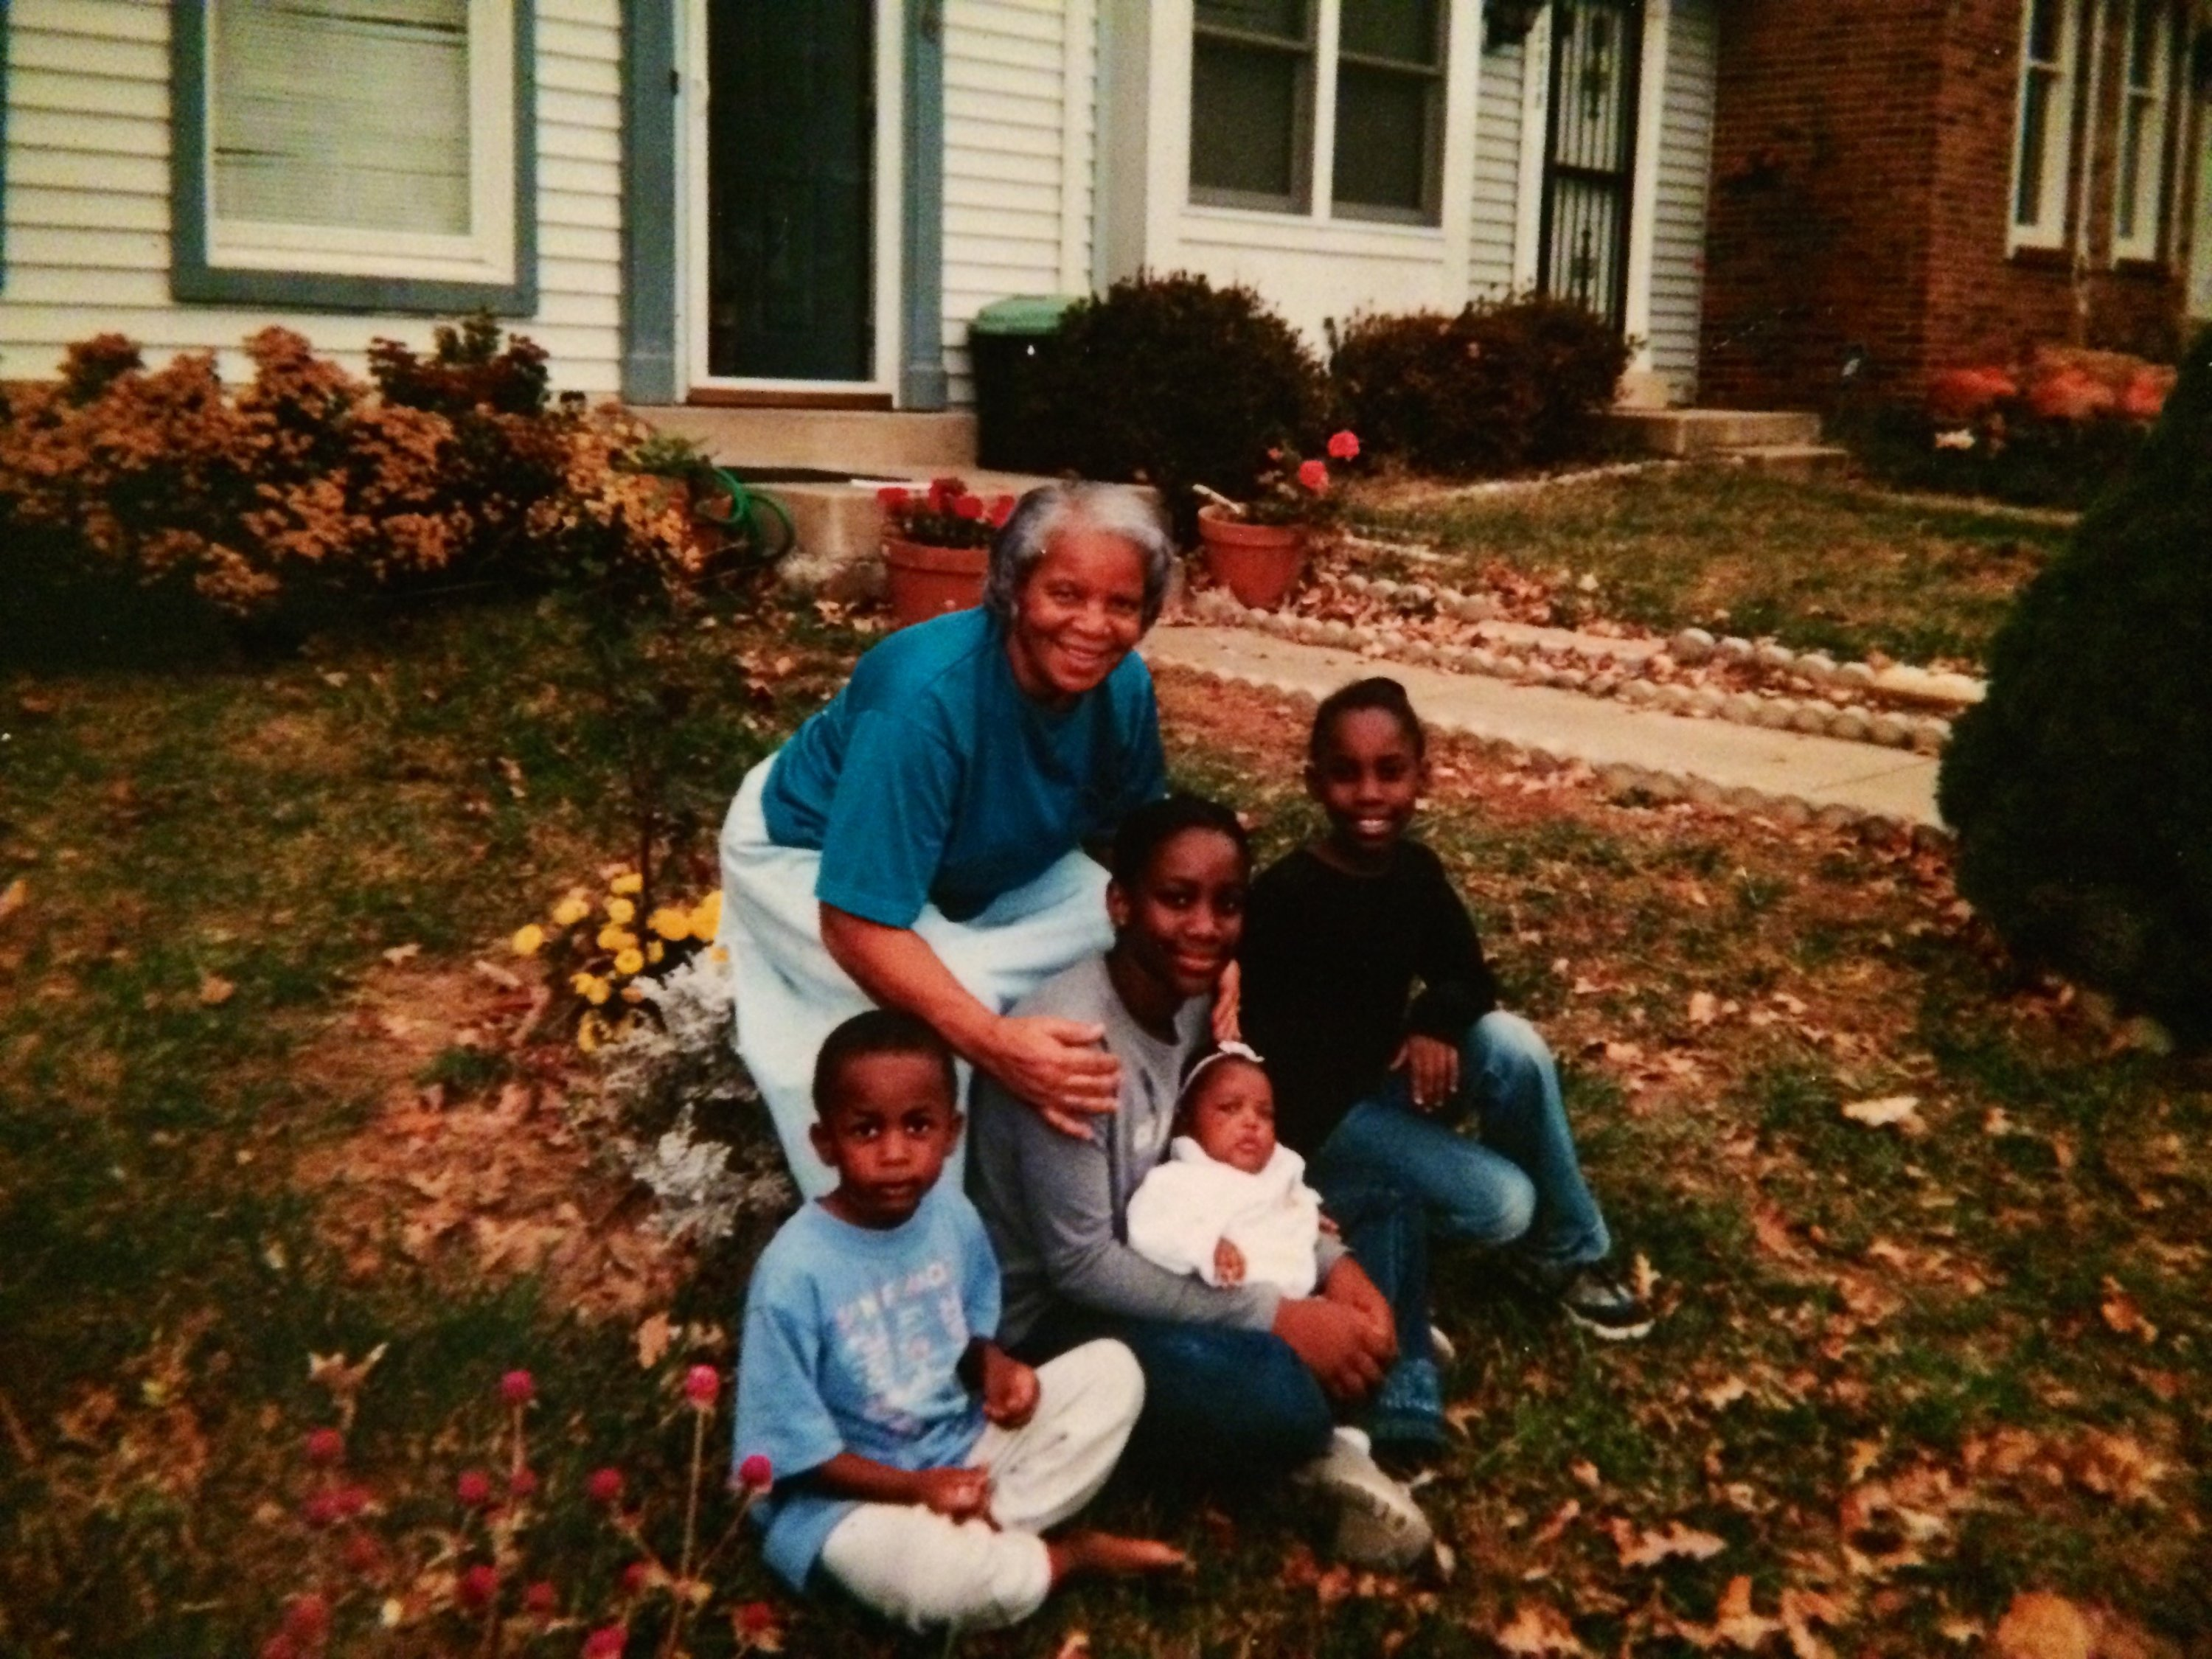 An undated photo of Phillip (holding the baby) with her brother, sisters, and grandmother.